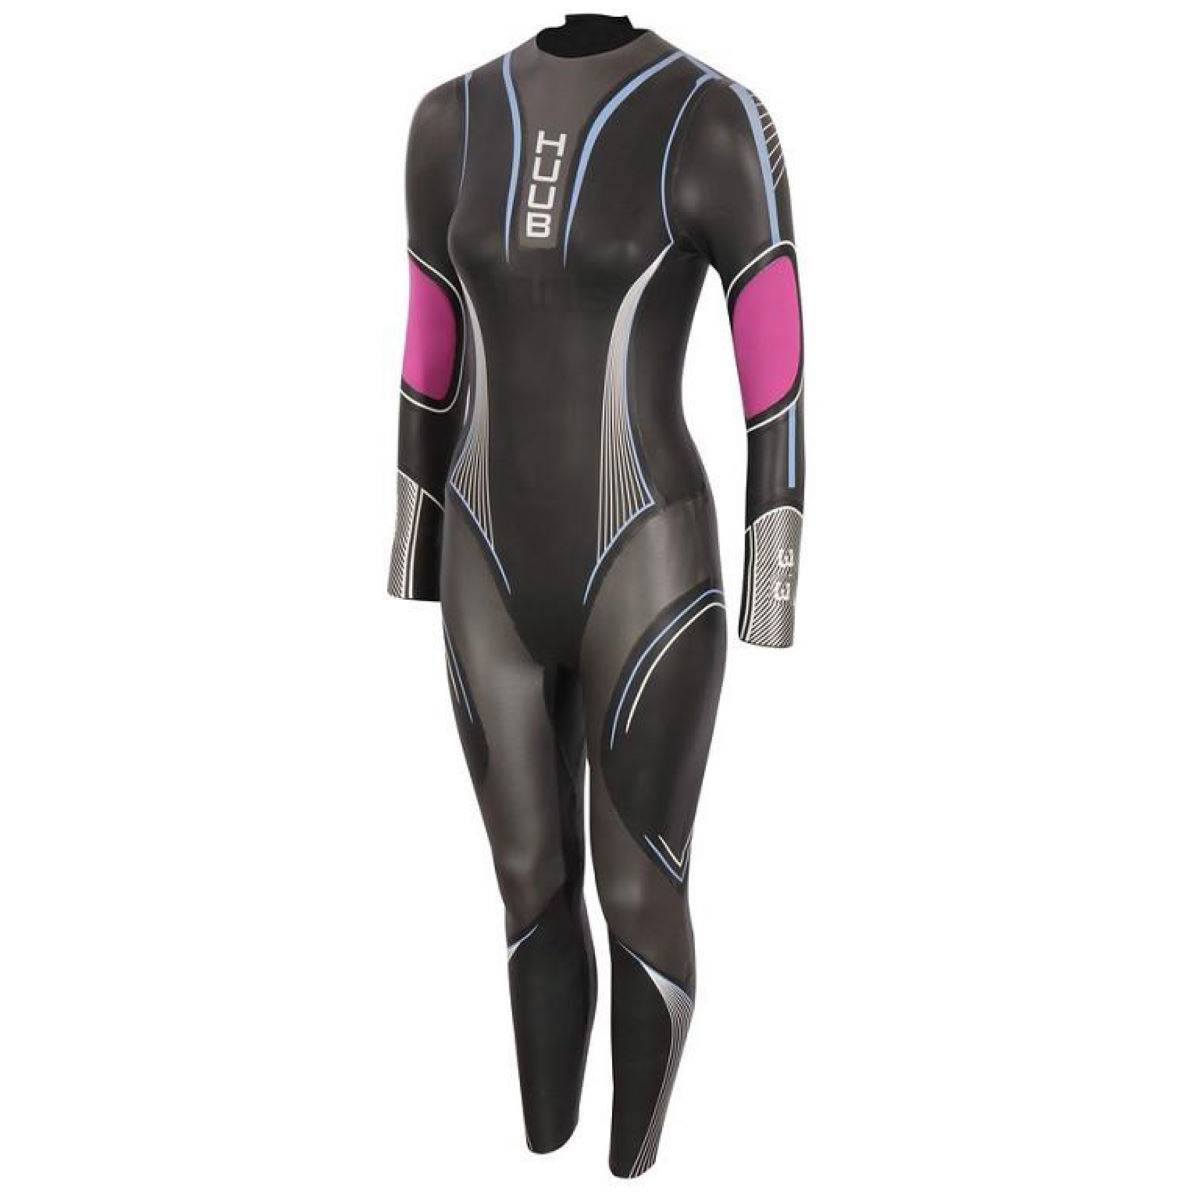 HUUB ACARA 3:3 - ML Black/Pink | Wetsuits